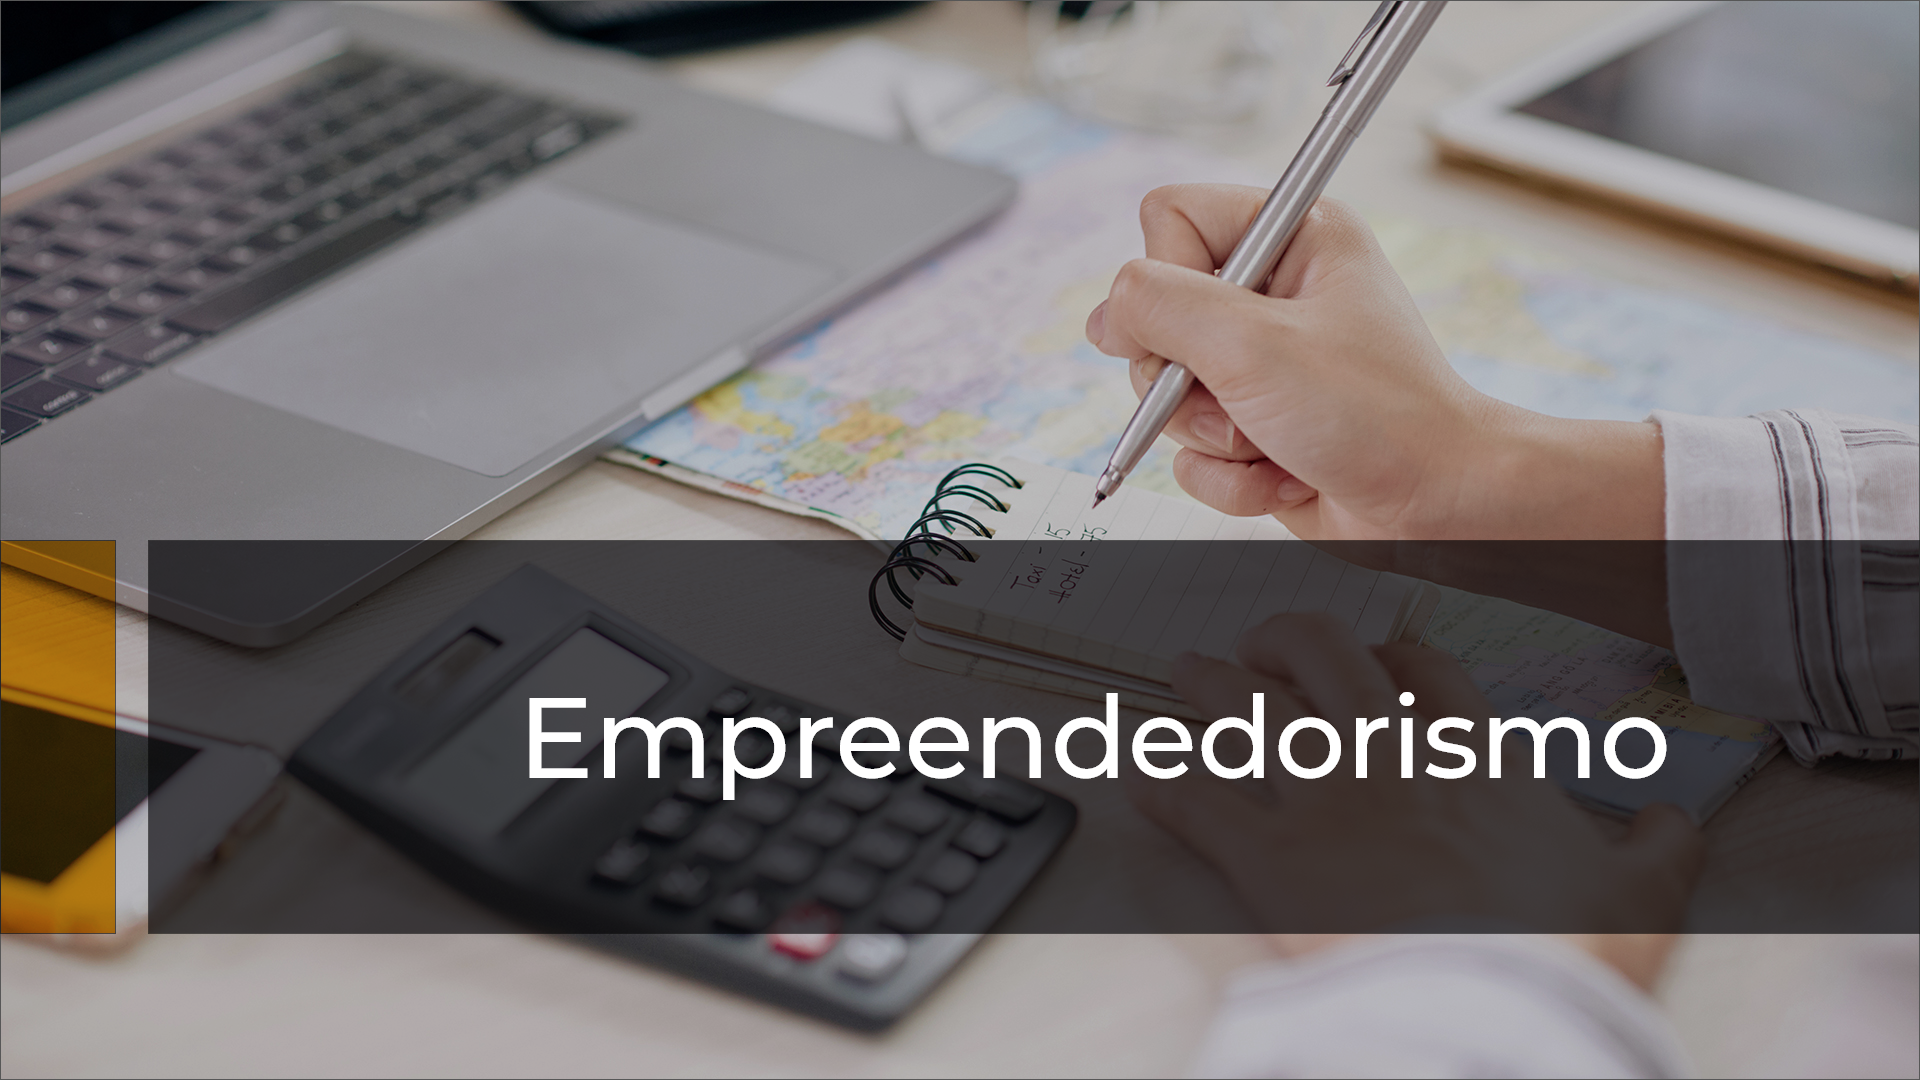 Categoria de empreendedorismo do blog CroSoften